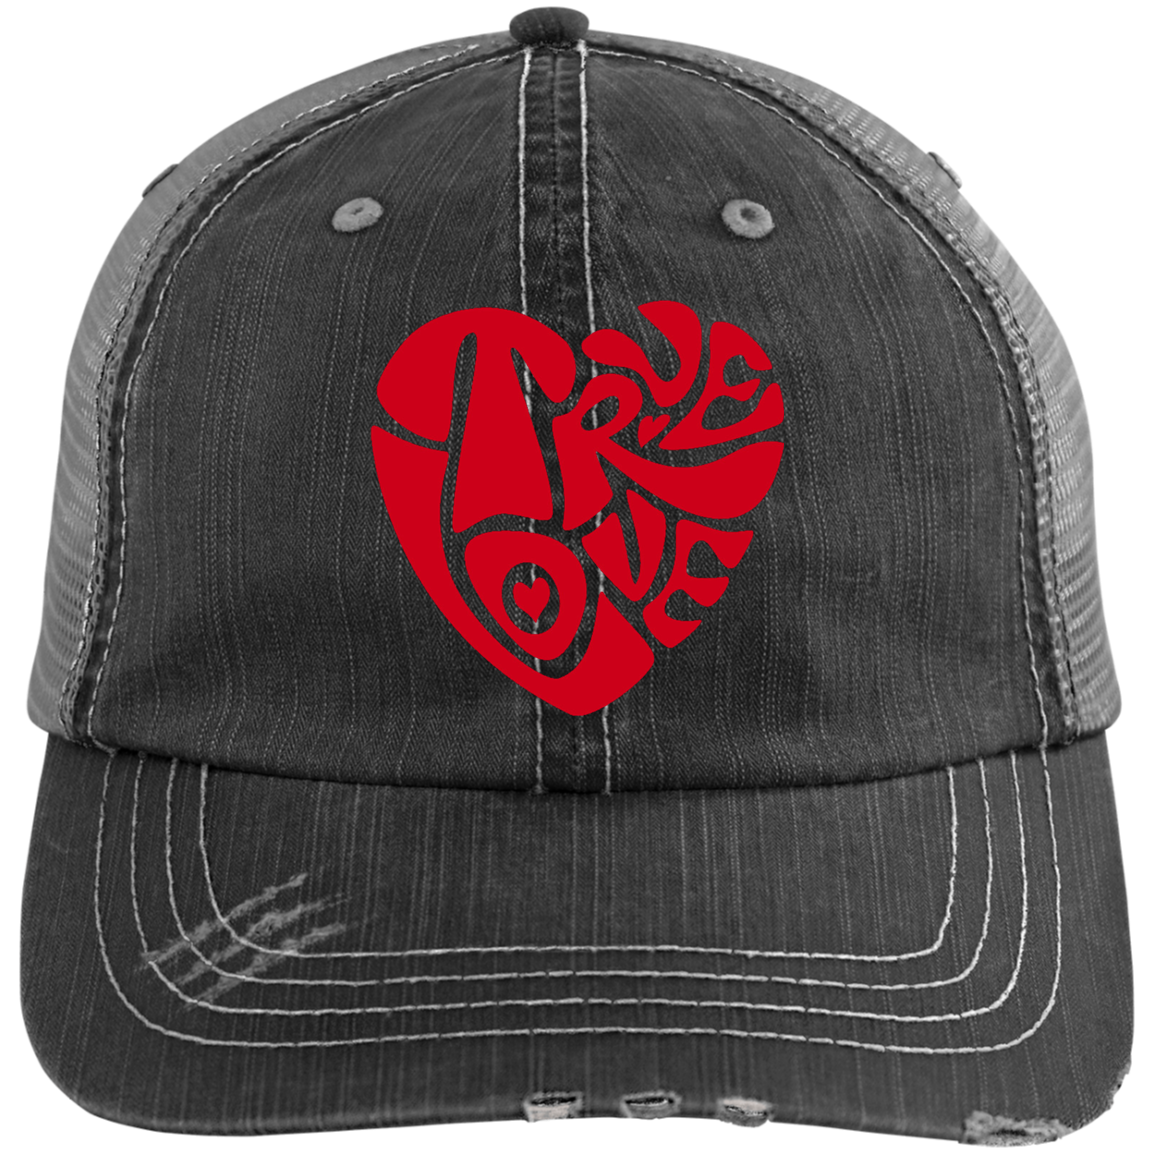 TRUE LOVE by Wisam embroidered Trucker Cap - SW@gSpot